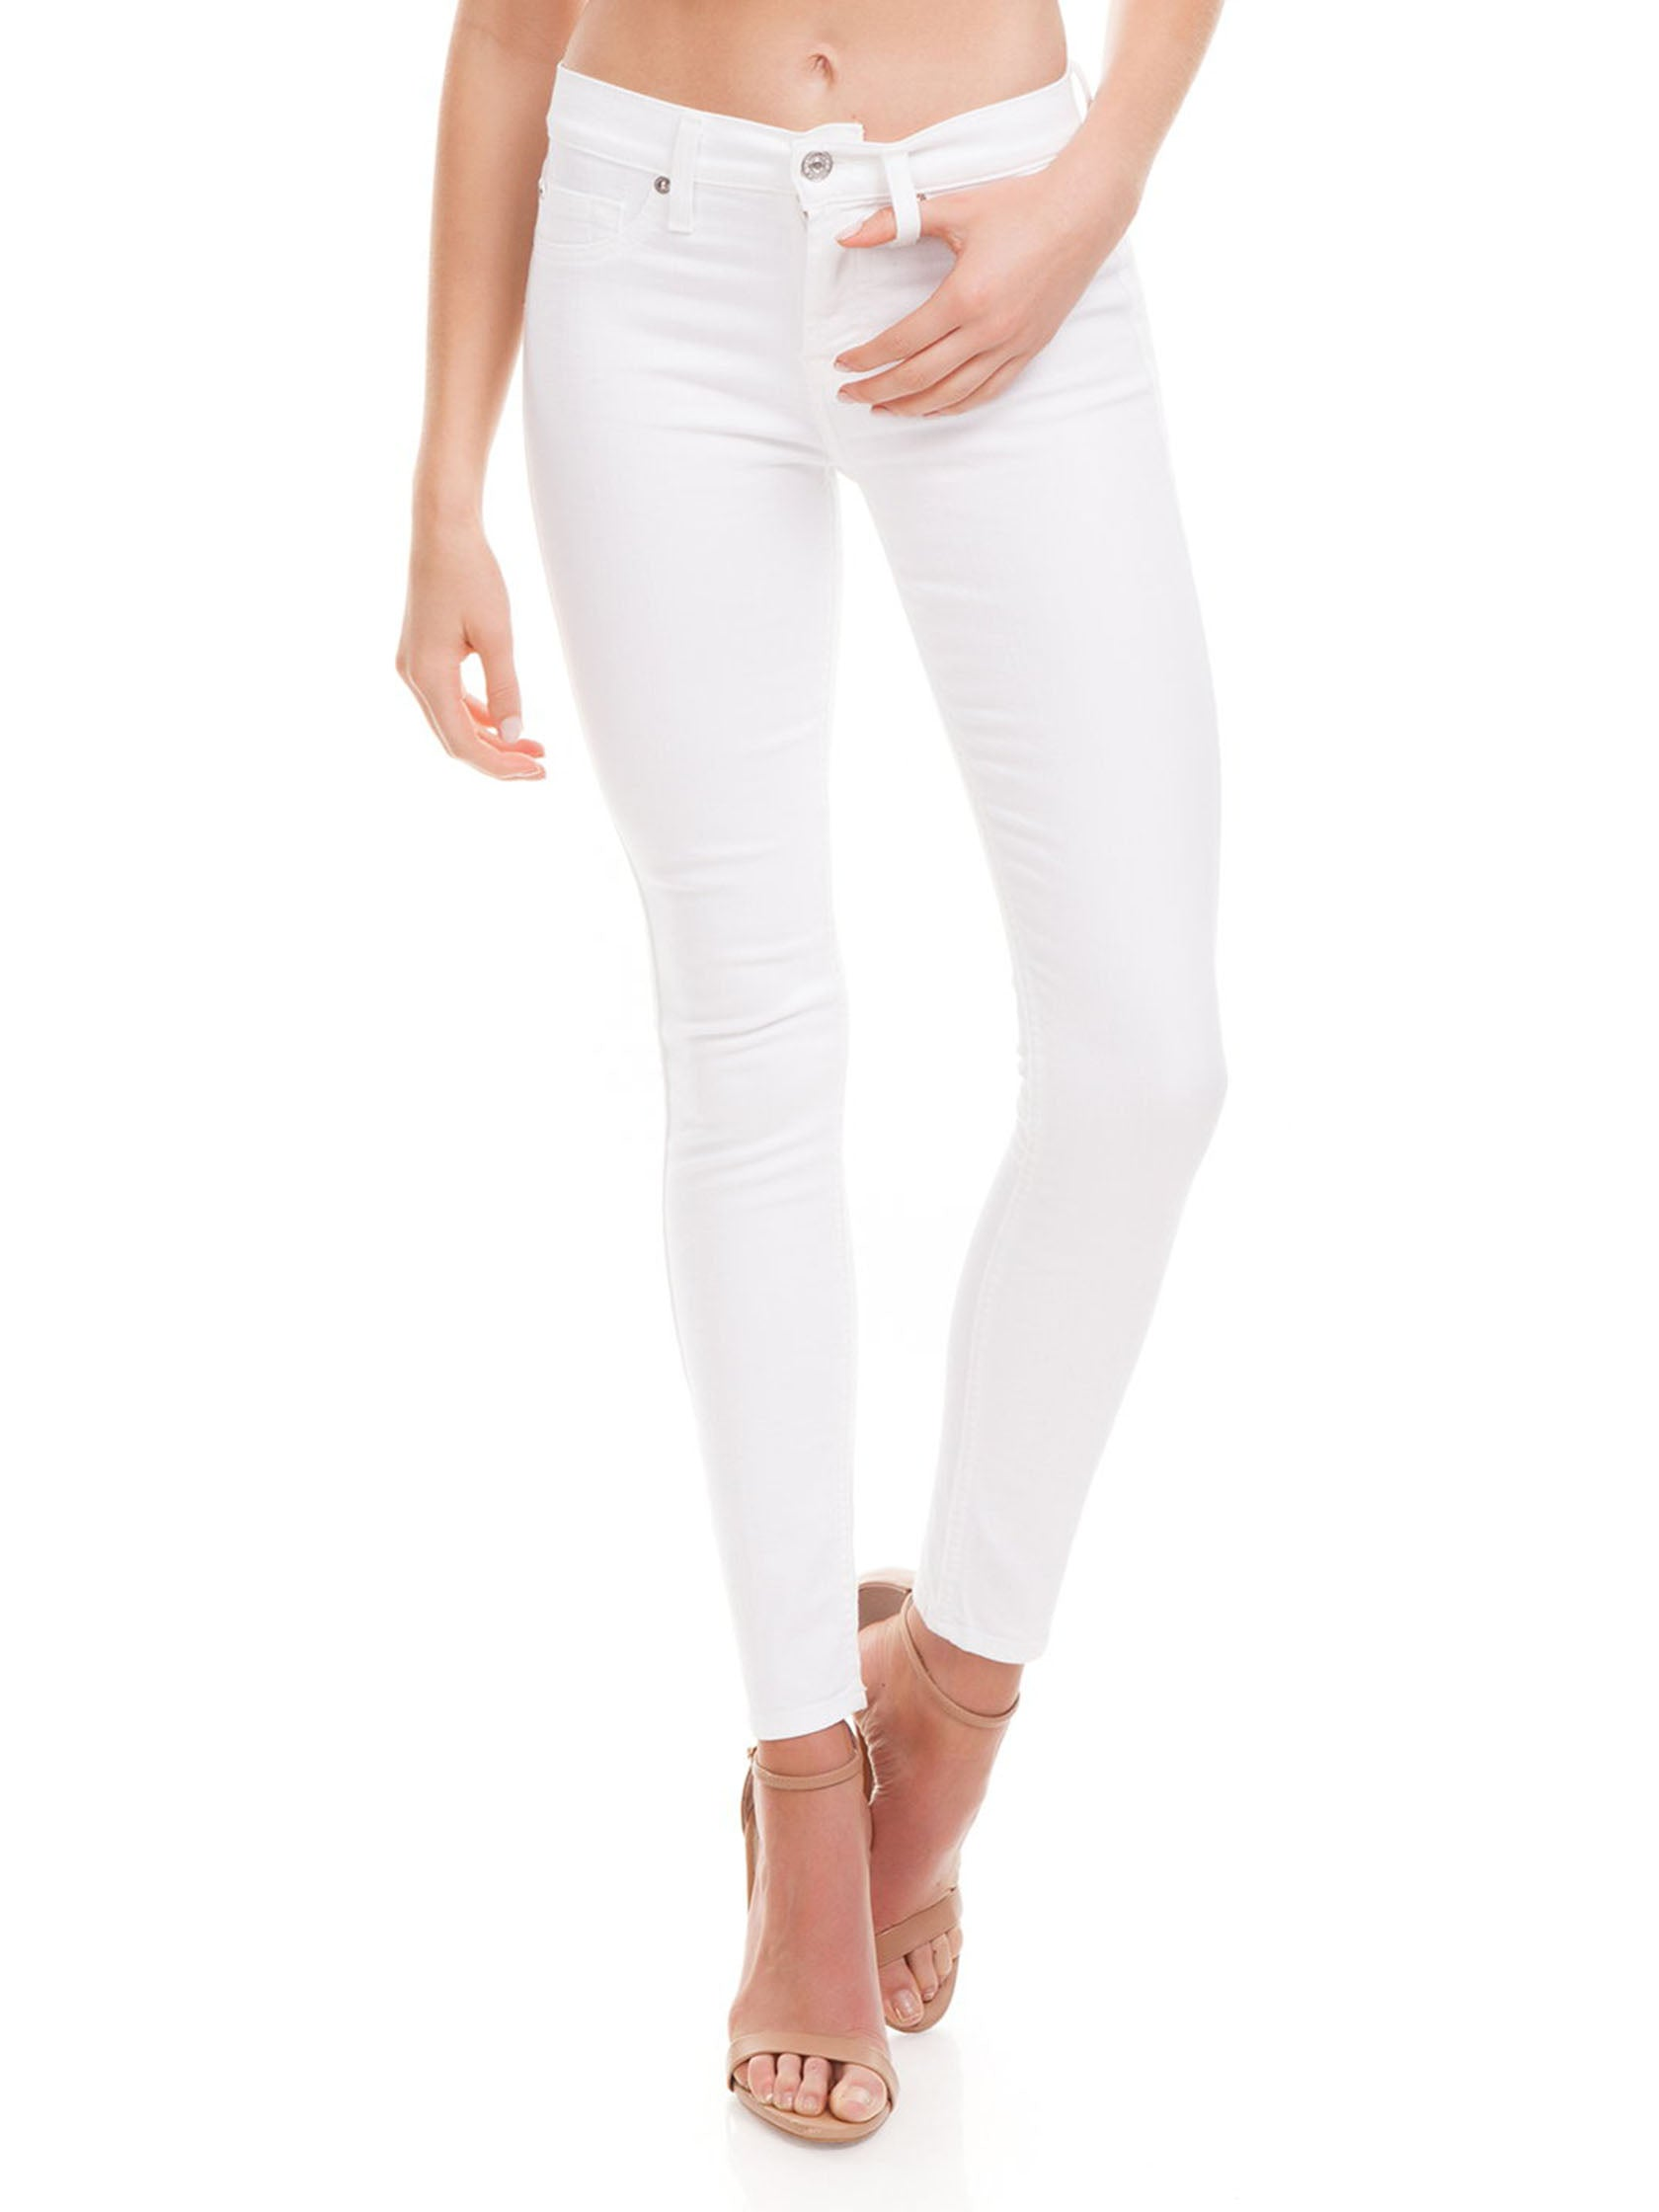 Woman wearing a denim rental from 7 For All Mankind called B(air) Skinny Ankle Jeans